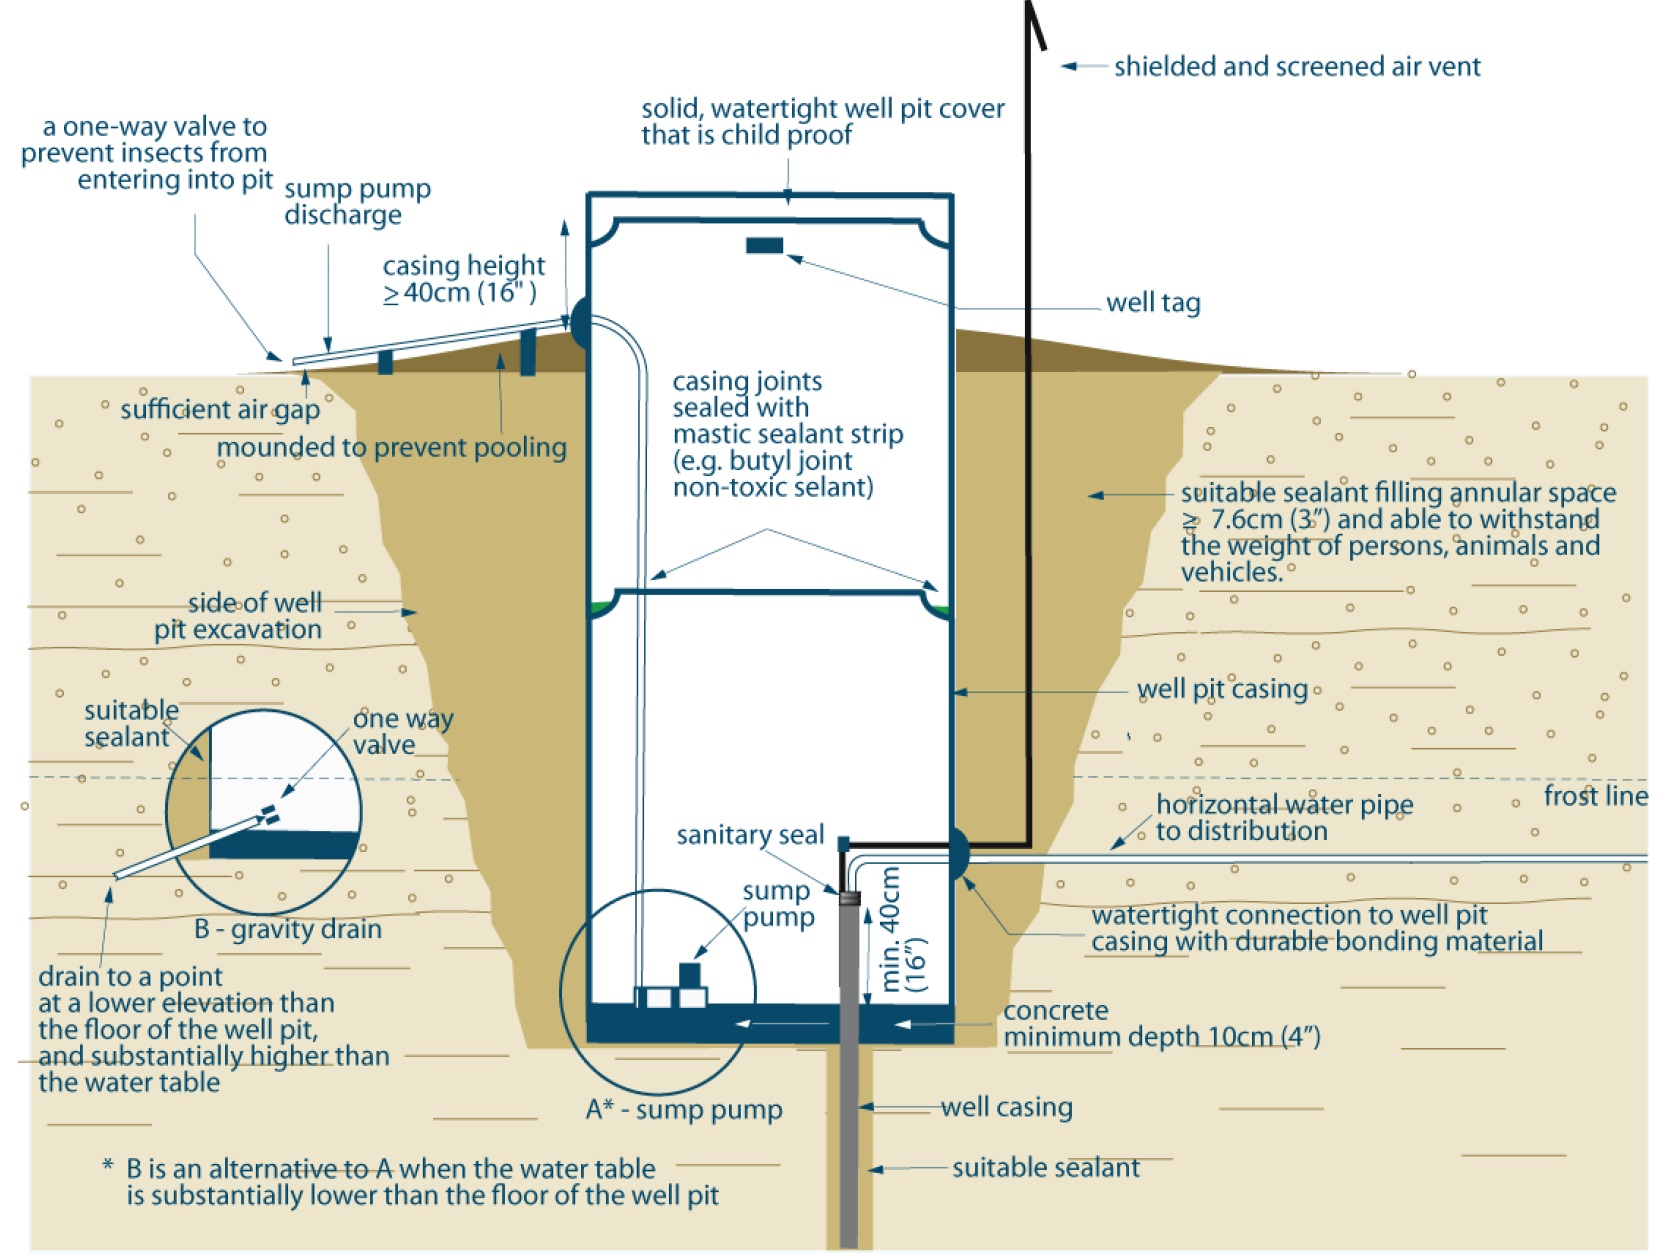 Techical Bulletin Wells Regulation Completing The Structure Of French Drain To Sump Pump Diagram See Text Below For Description